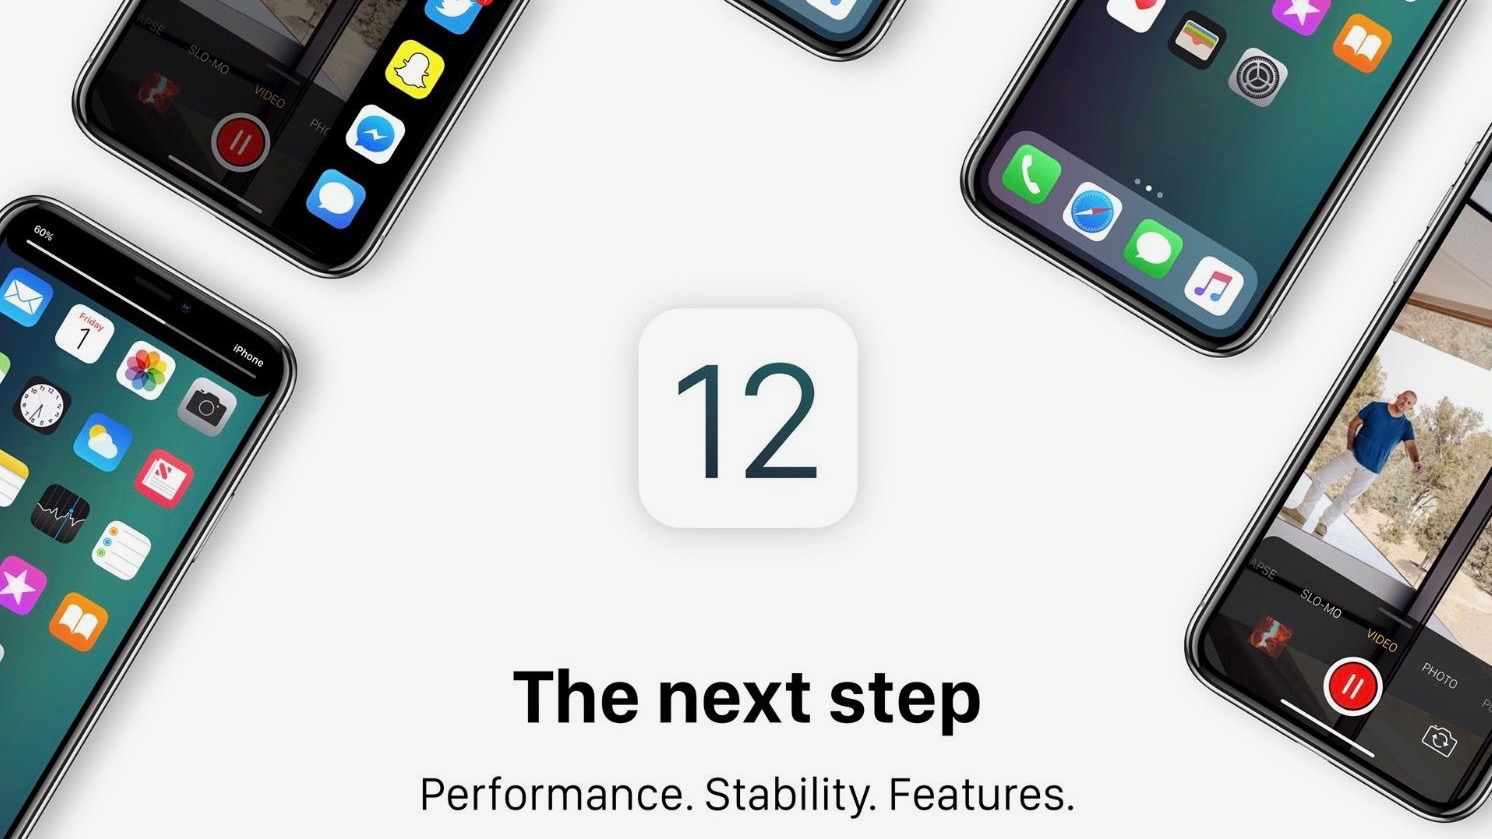 New iOS 12 concept offers up refreshed Lock screen, App Bar, Guest Mode, Face ID tricks, and more